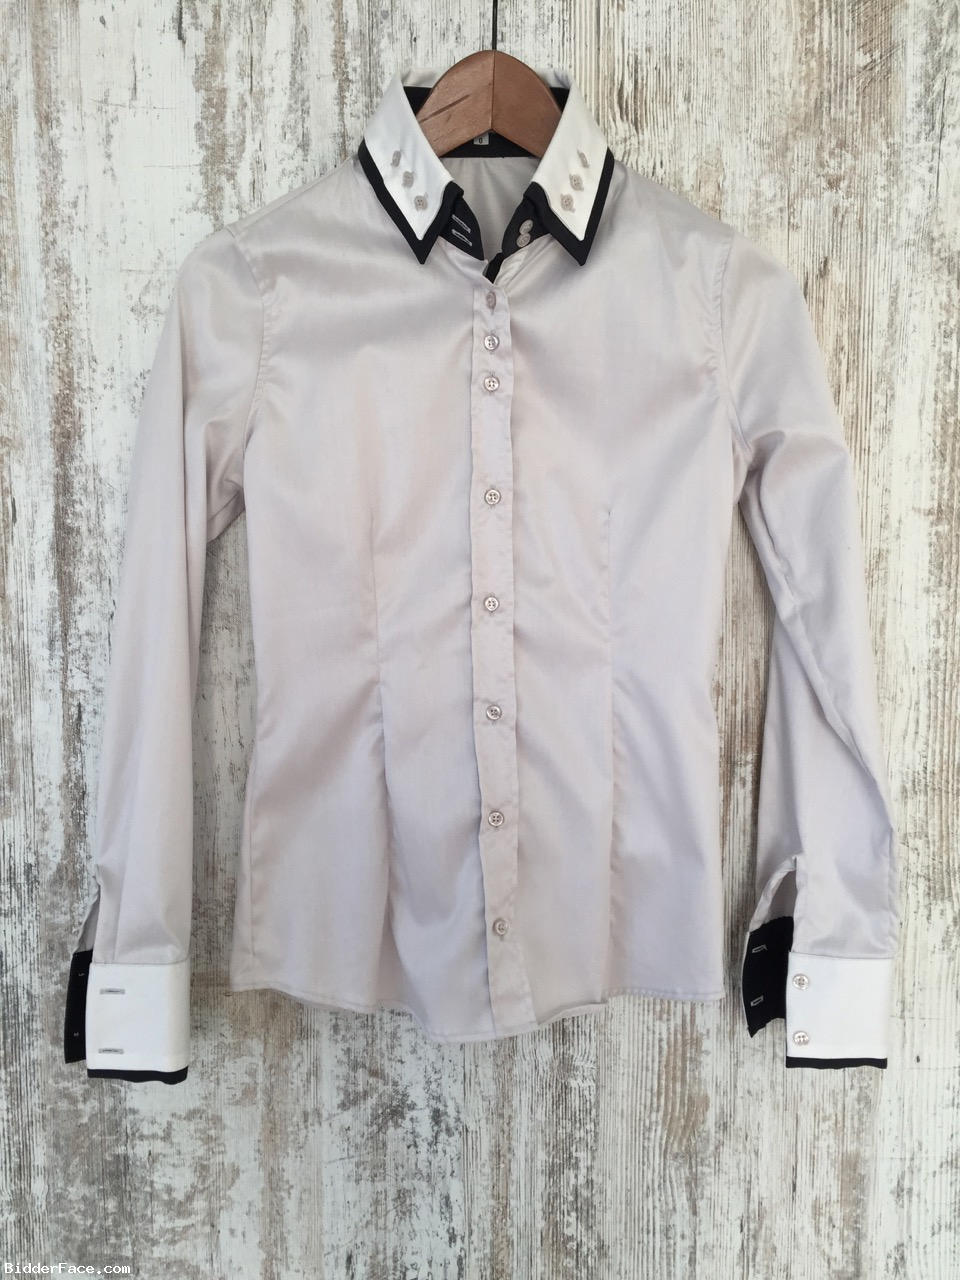 5186f41fb93f Nara Camicie - Italian Shirt   Košeľa   IngElegant women shirt Made in Italy